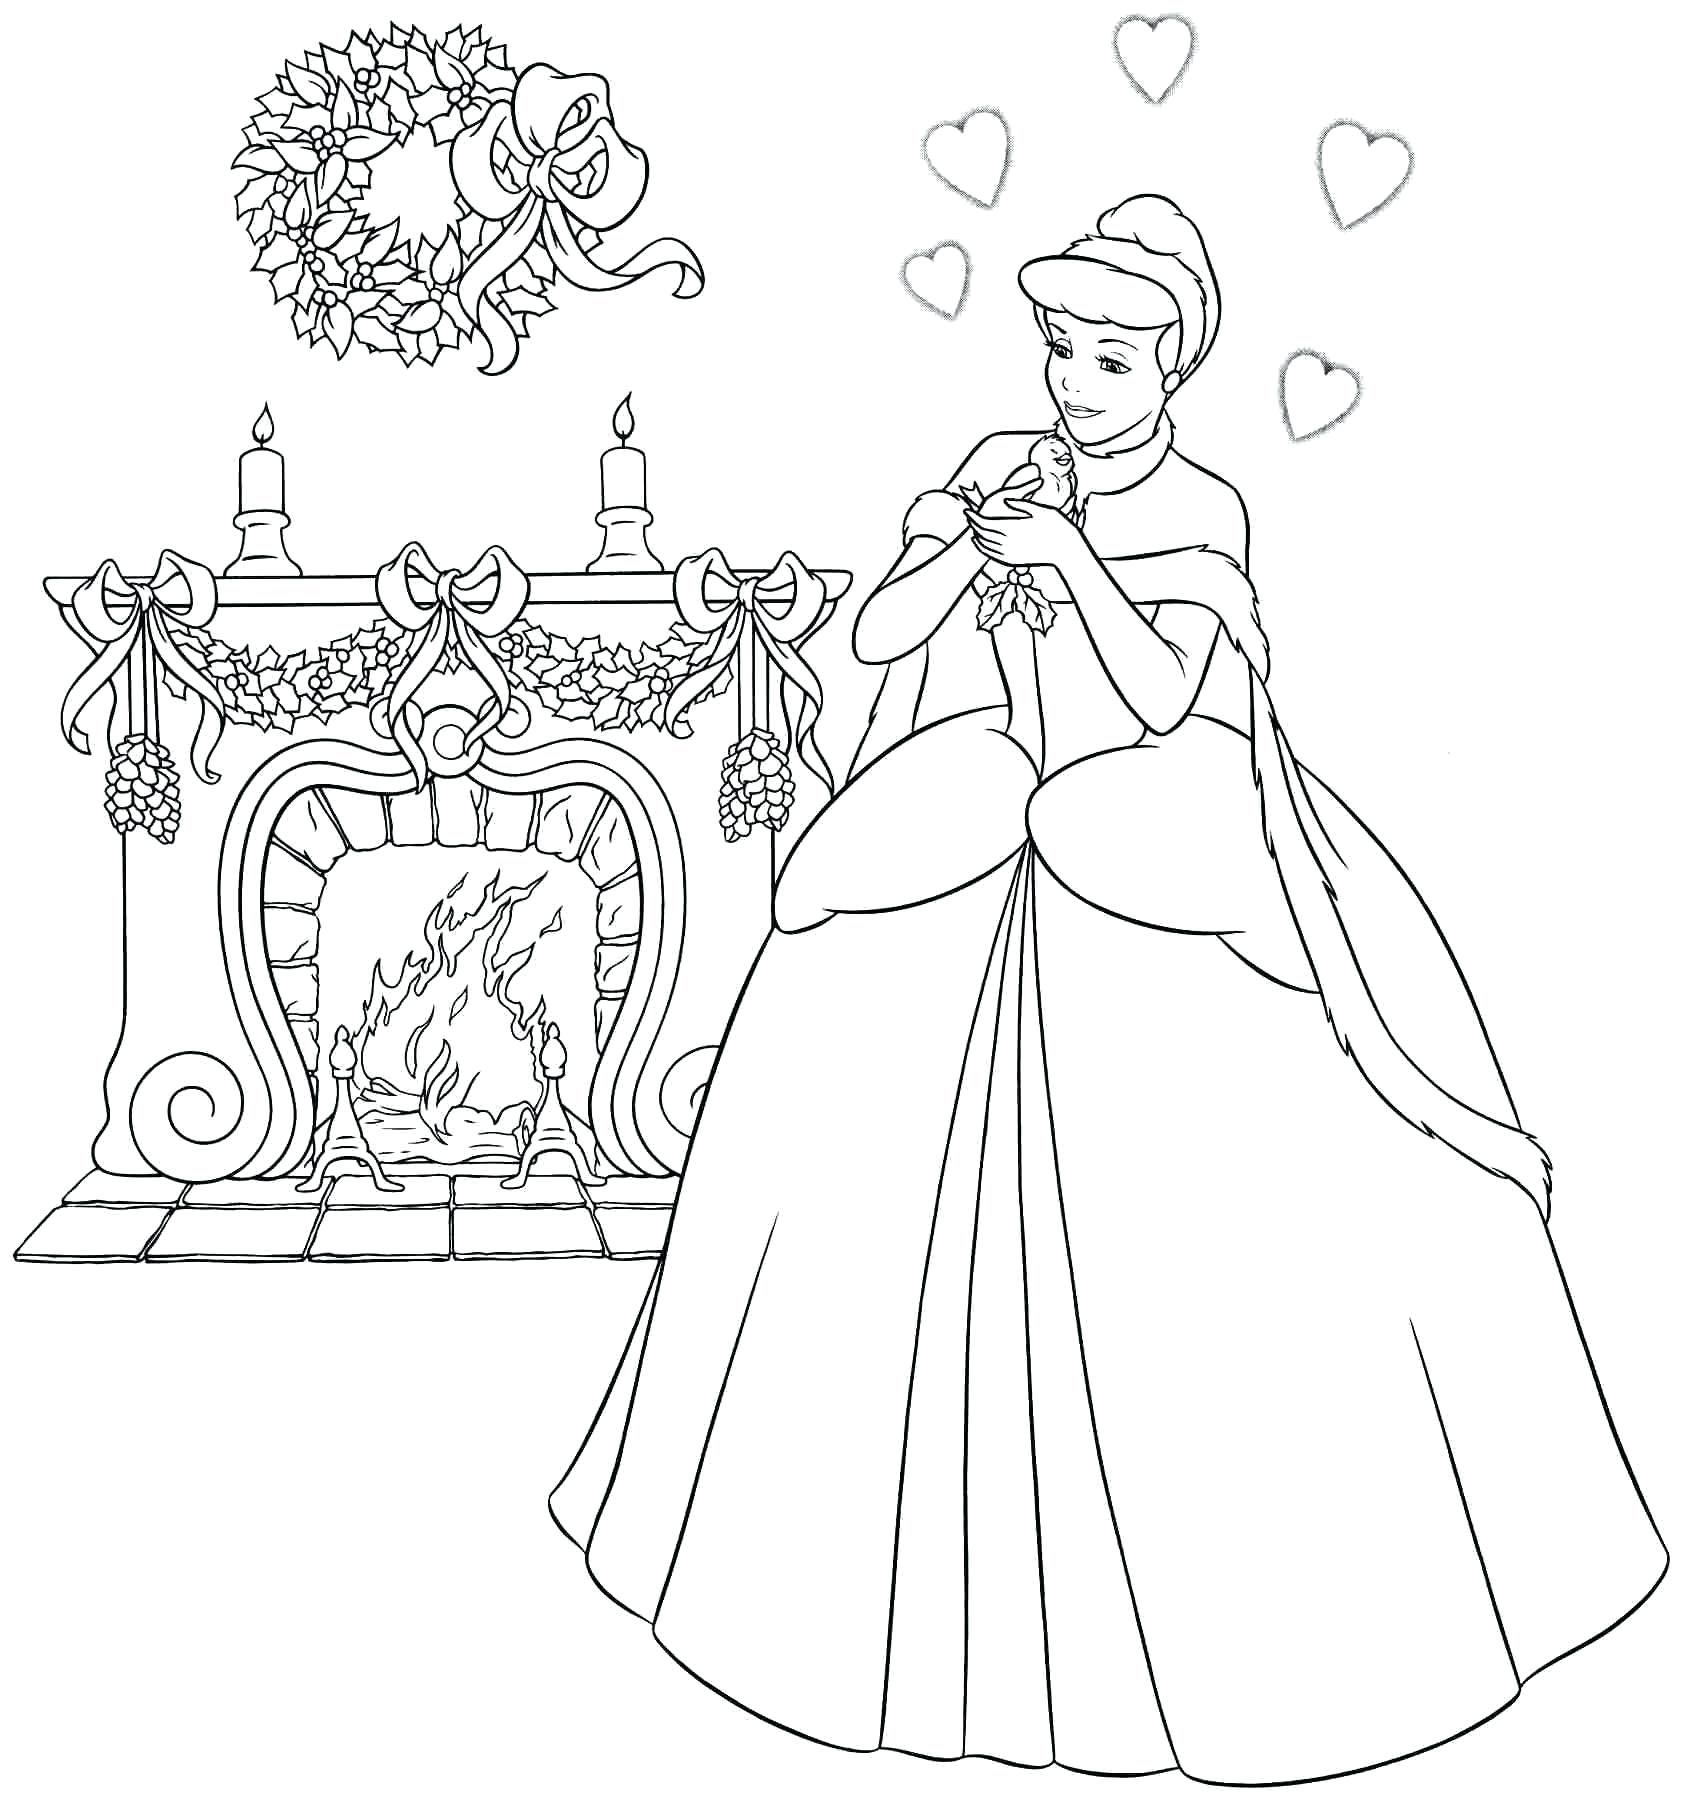 Disney Princess Castle Coloring Pages At GetDrawings